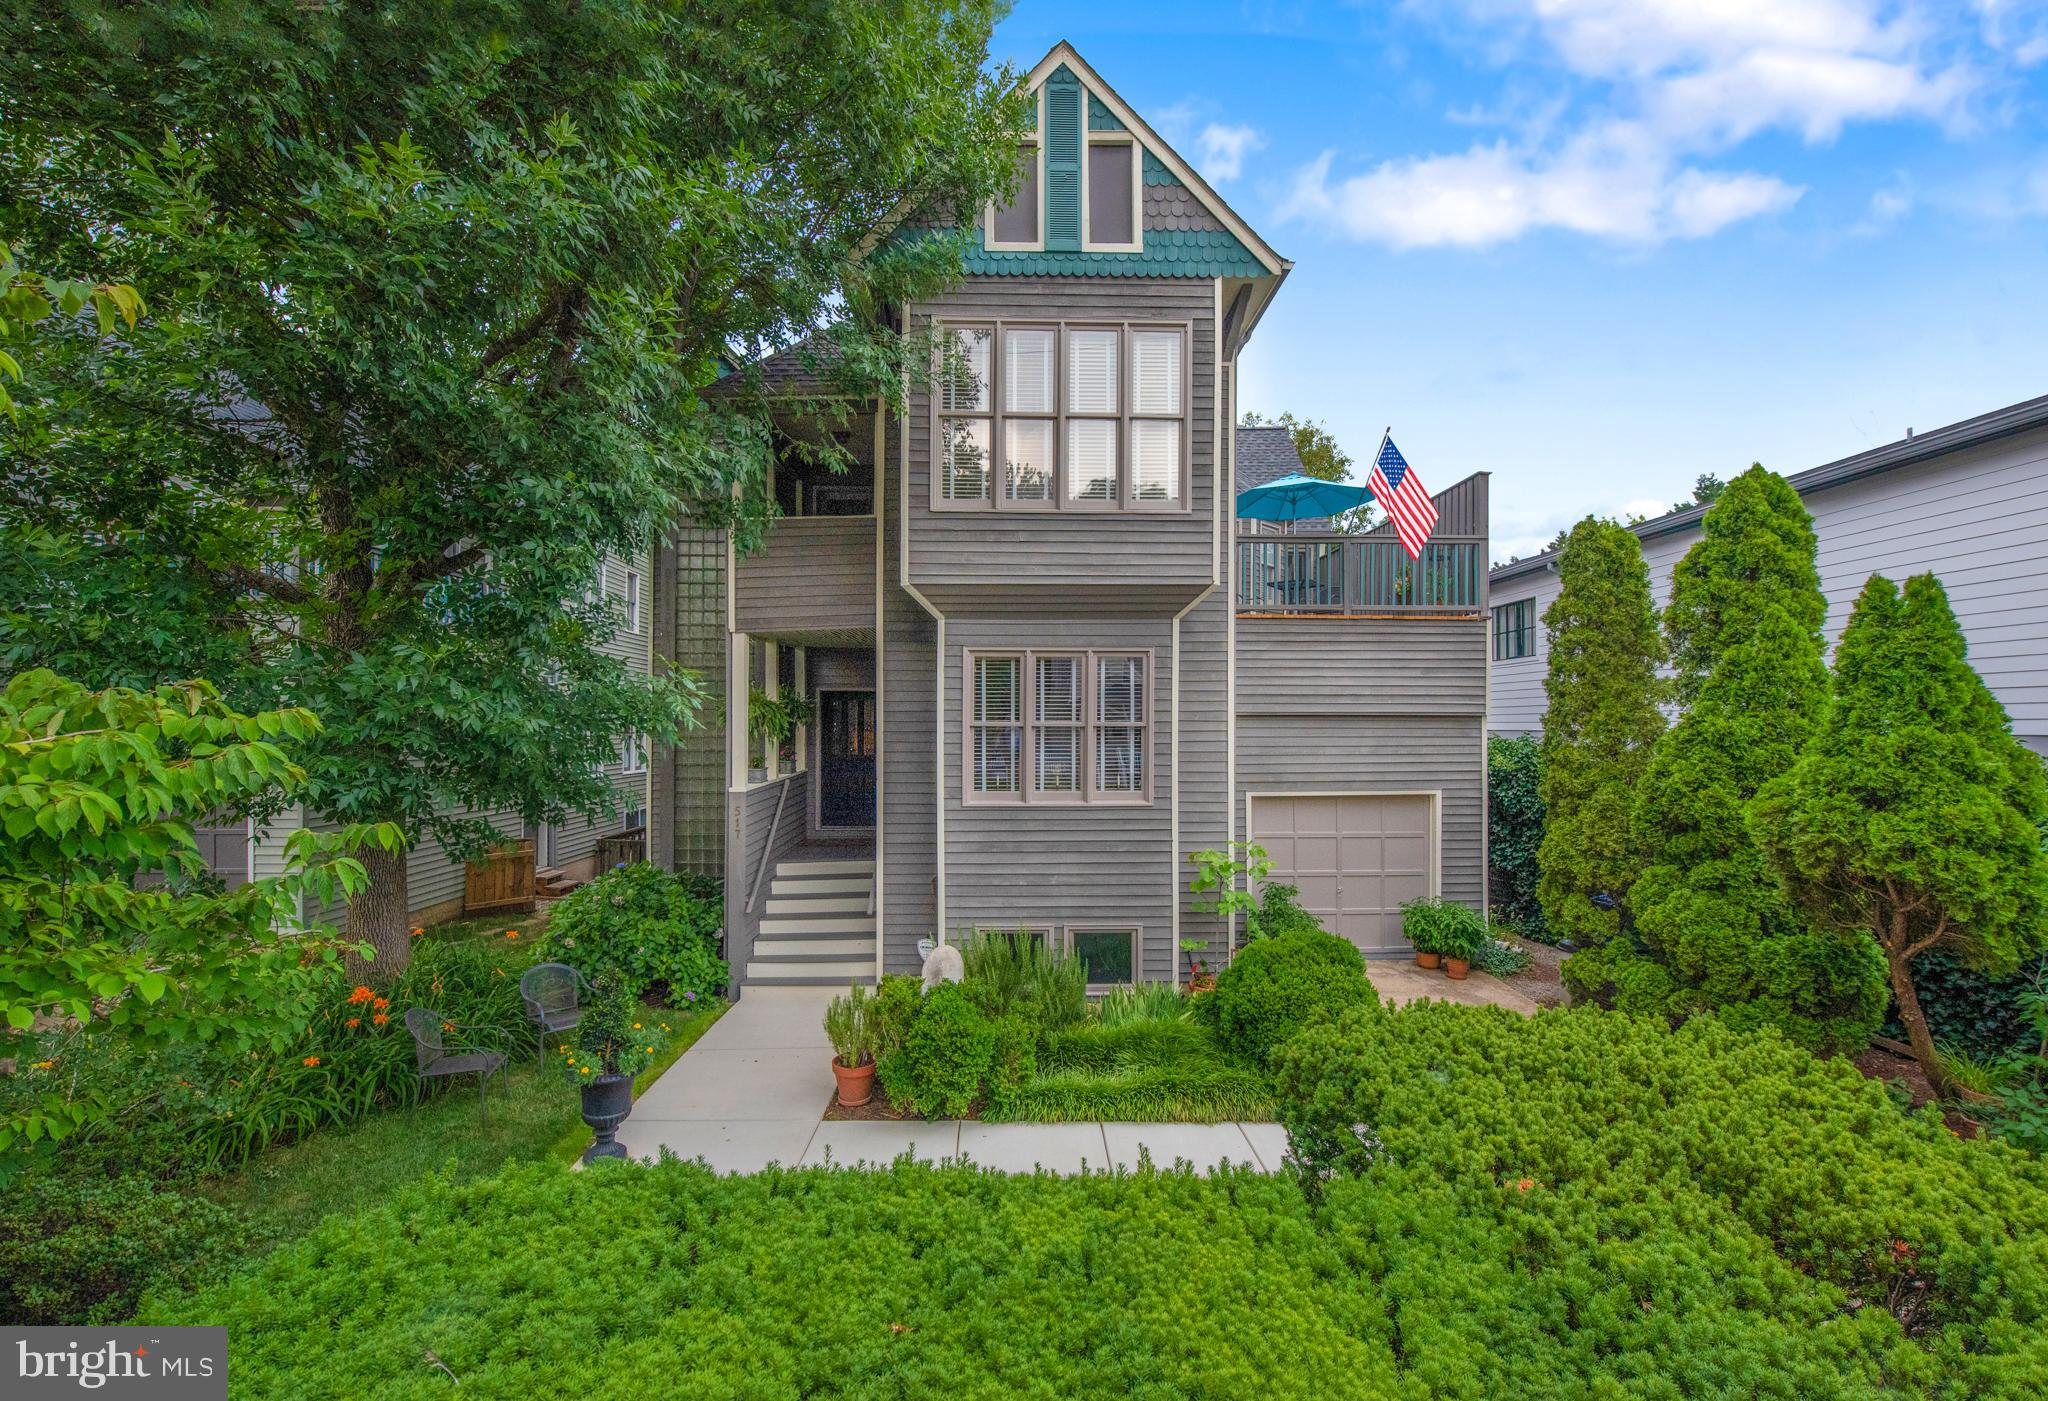 A San Francisco Victorian in the heart of Eastport, the maritime area of Historic State Capitol Anna